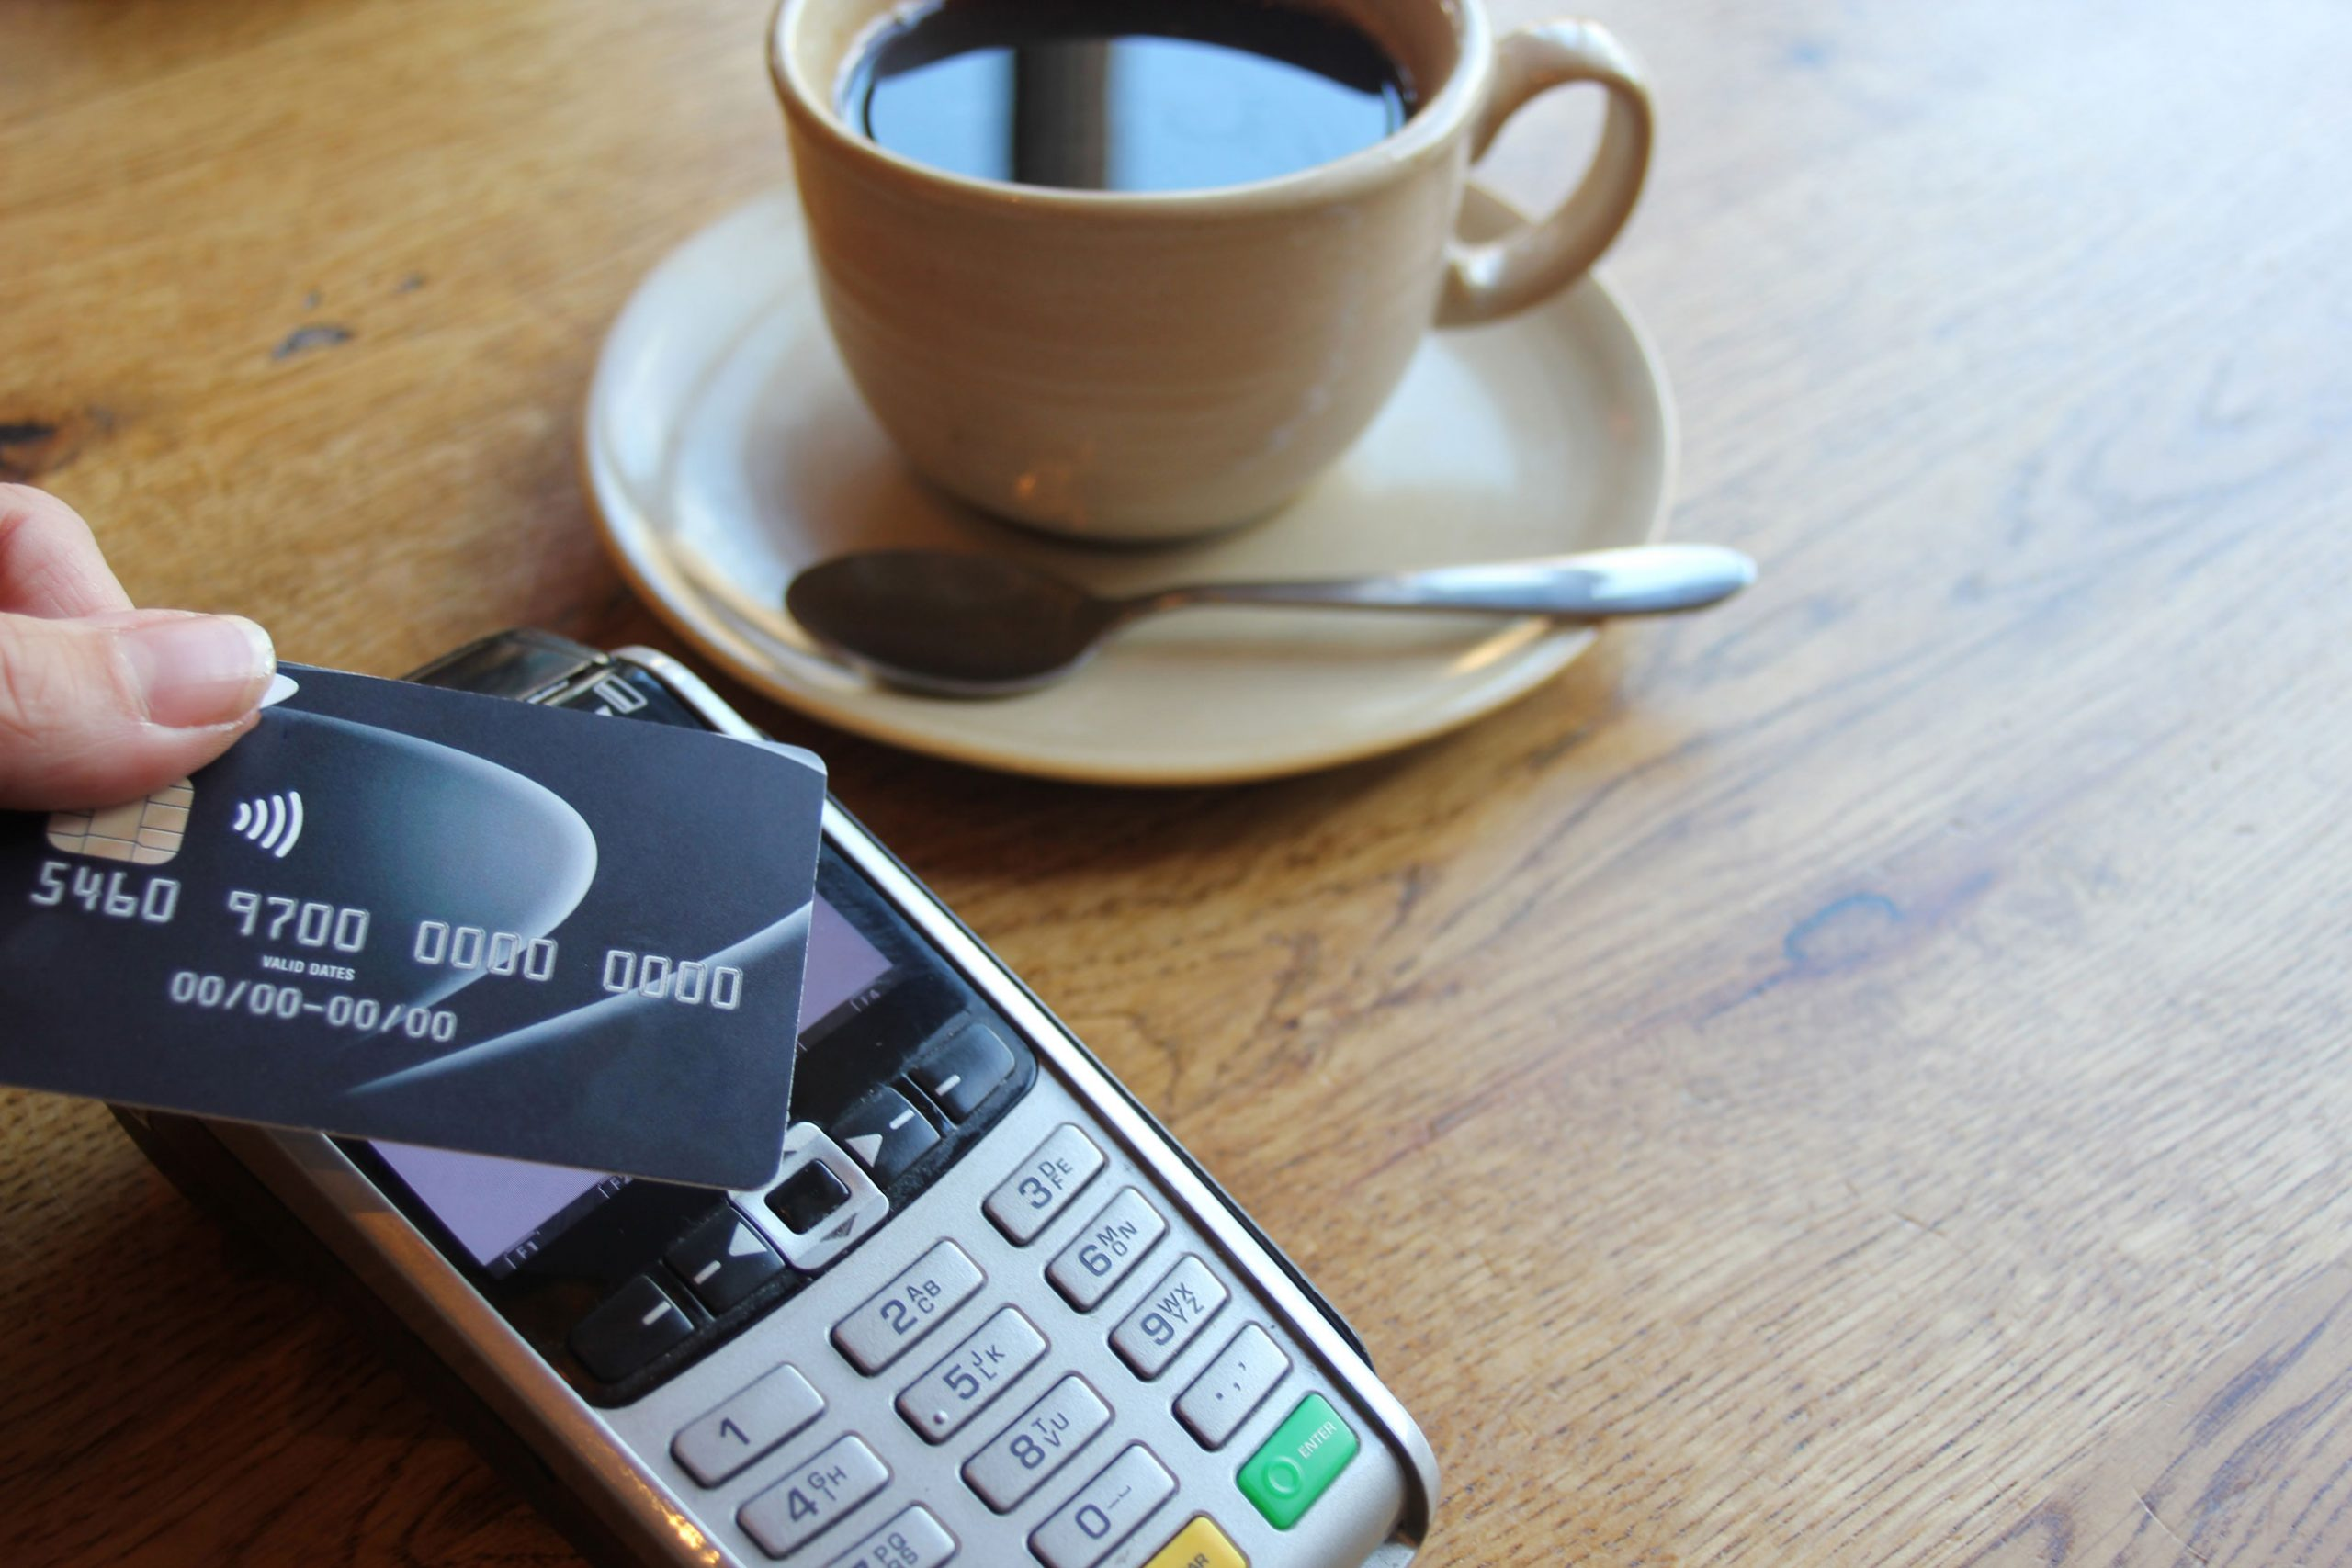 Touch-Free Payments With Contactless Cards